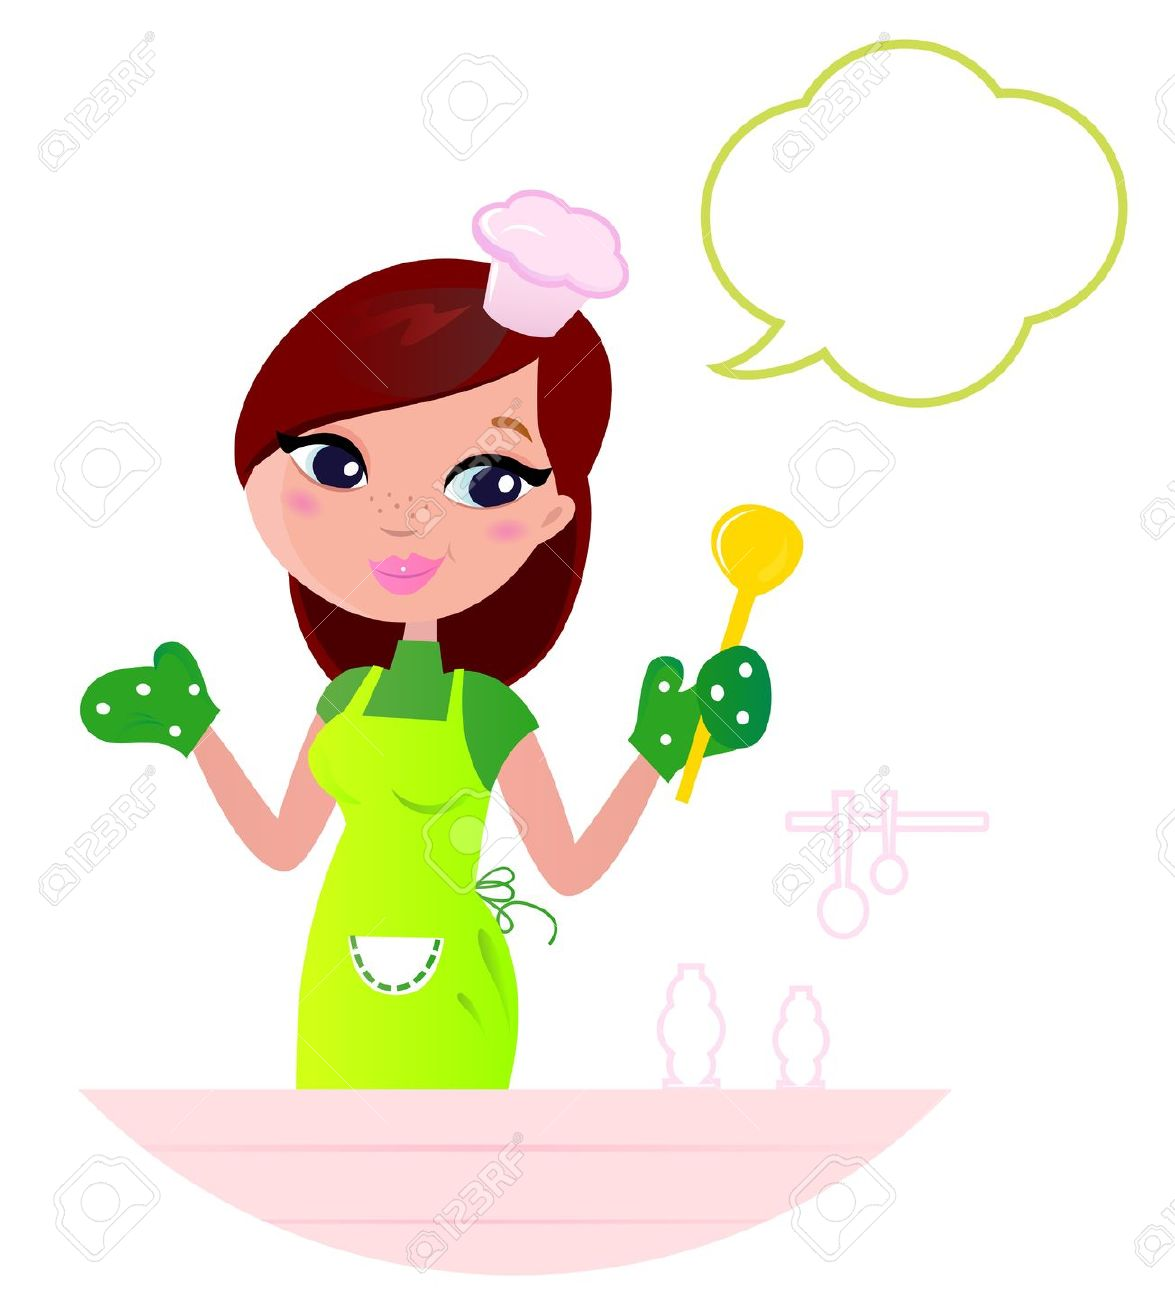 mother baking clipart - Clipground